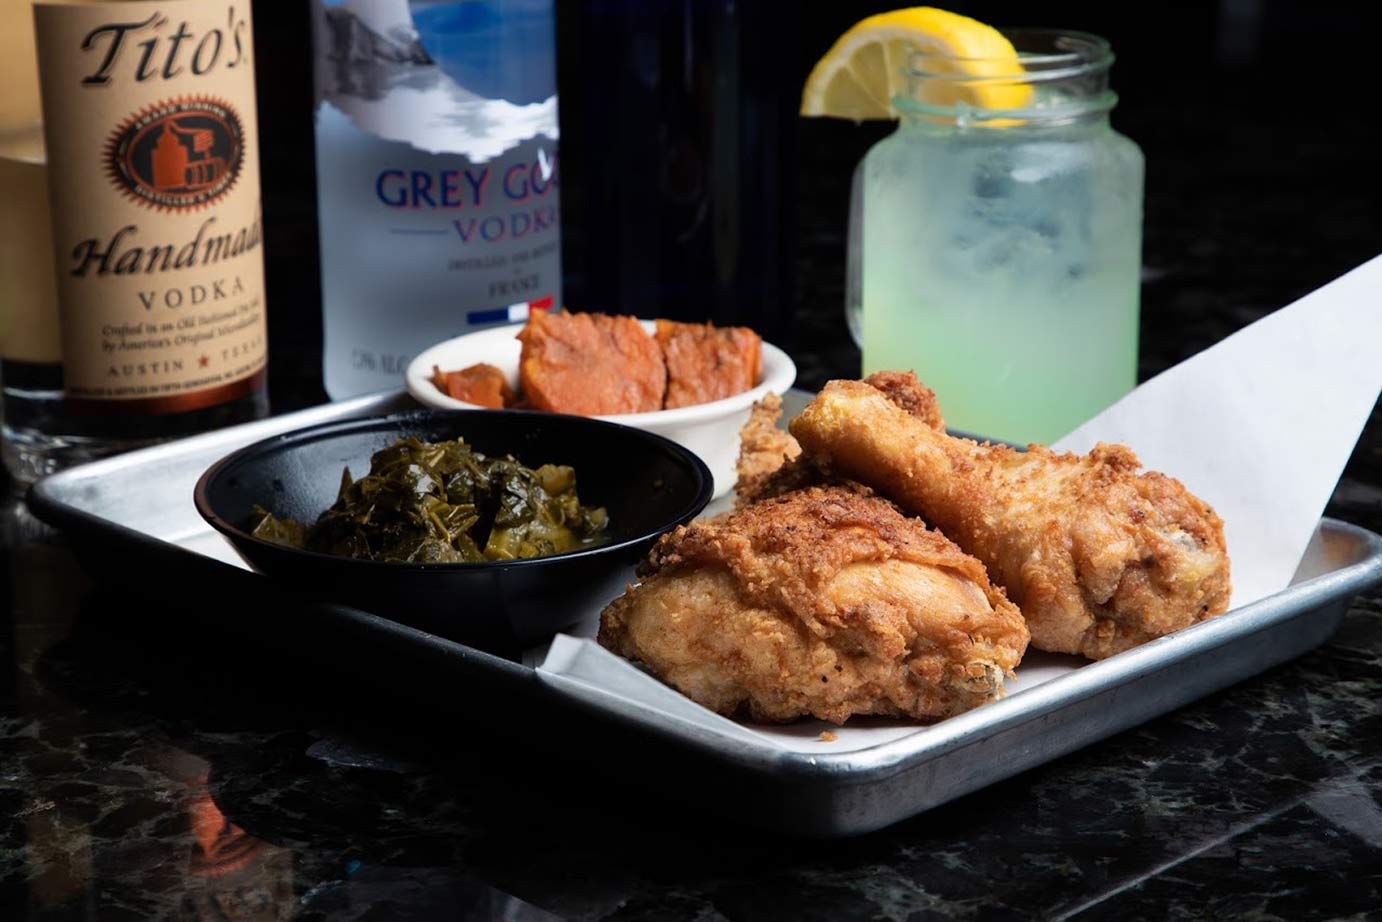 image of a fried chicken meal with a lemonade